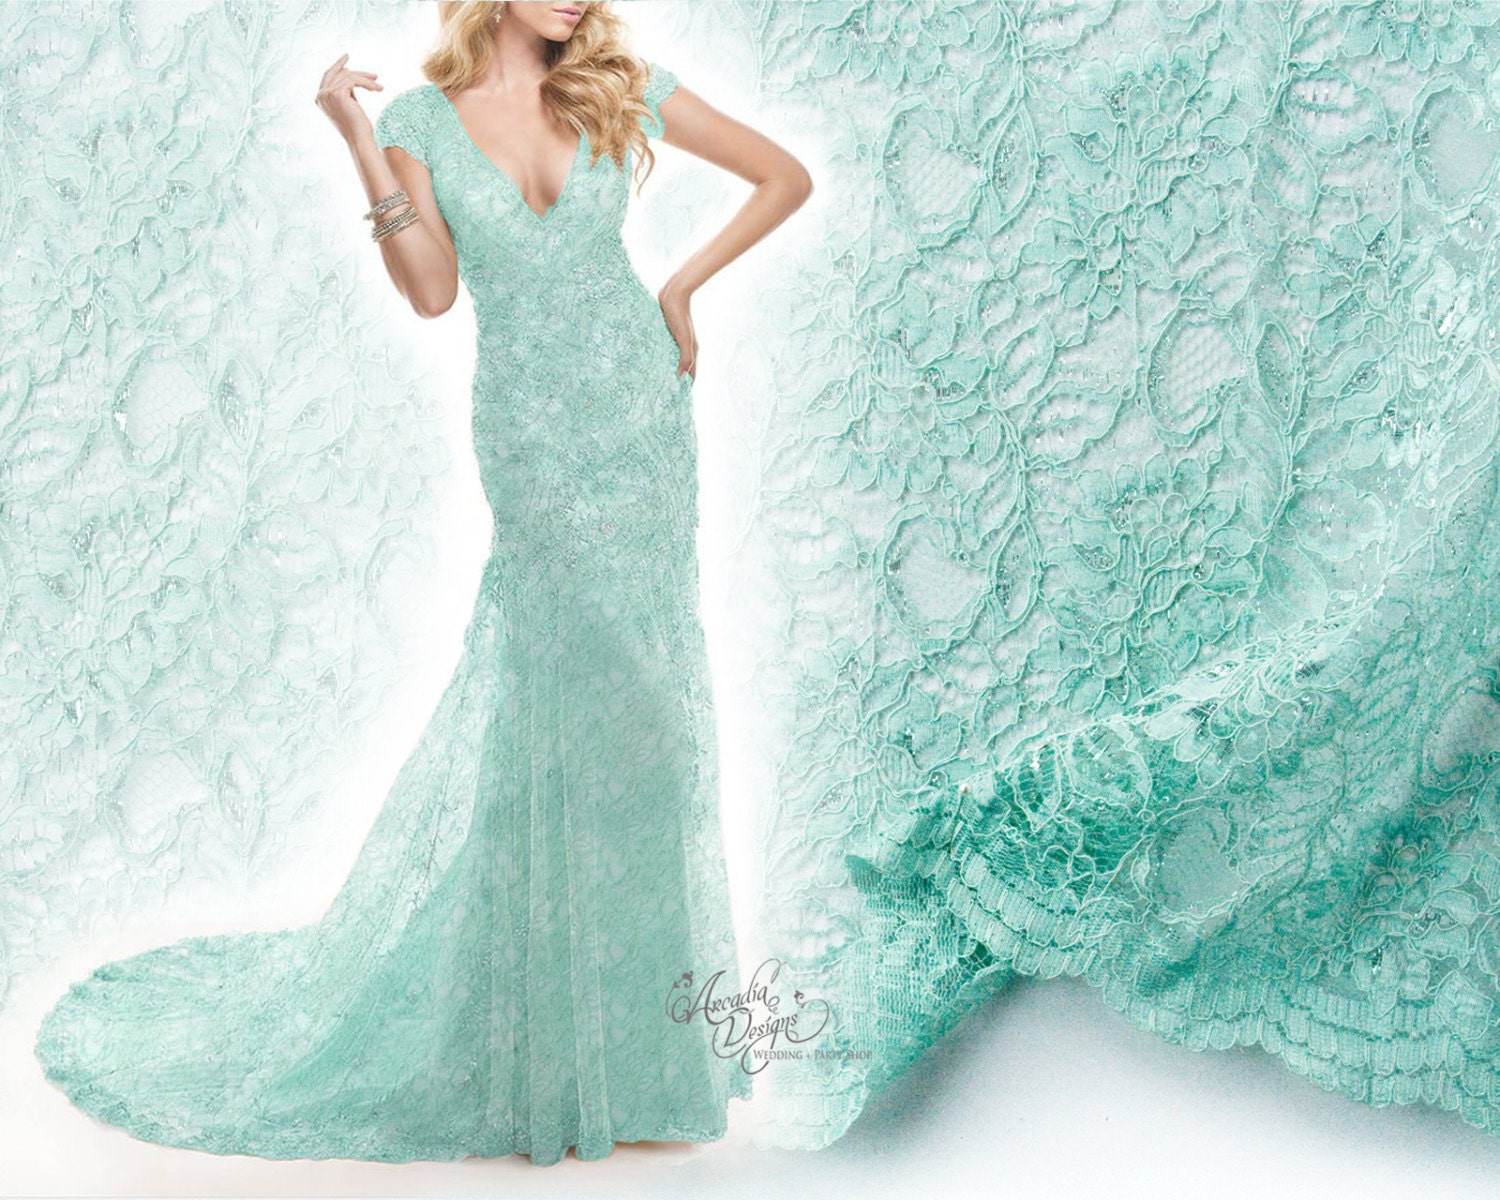 Outstanding Bridal Gown Fabric Model - All Wedding Dresses ...